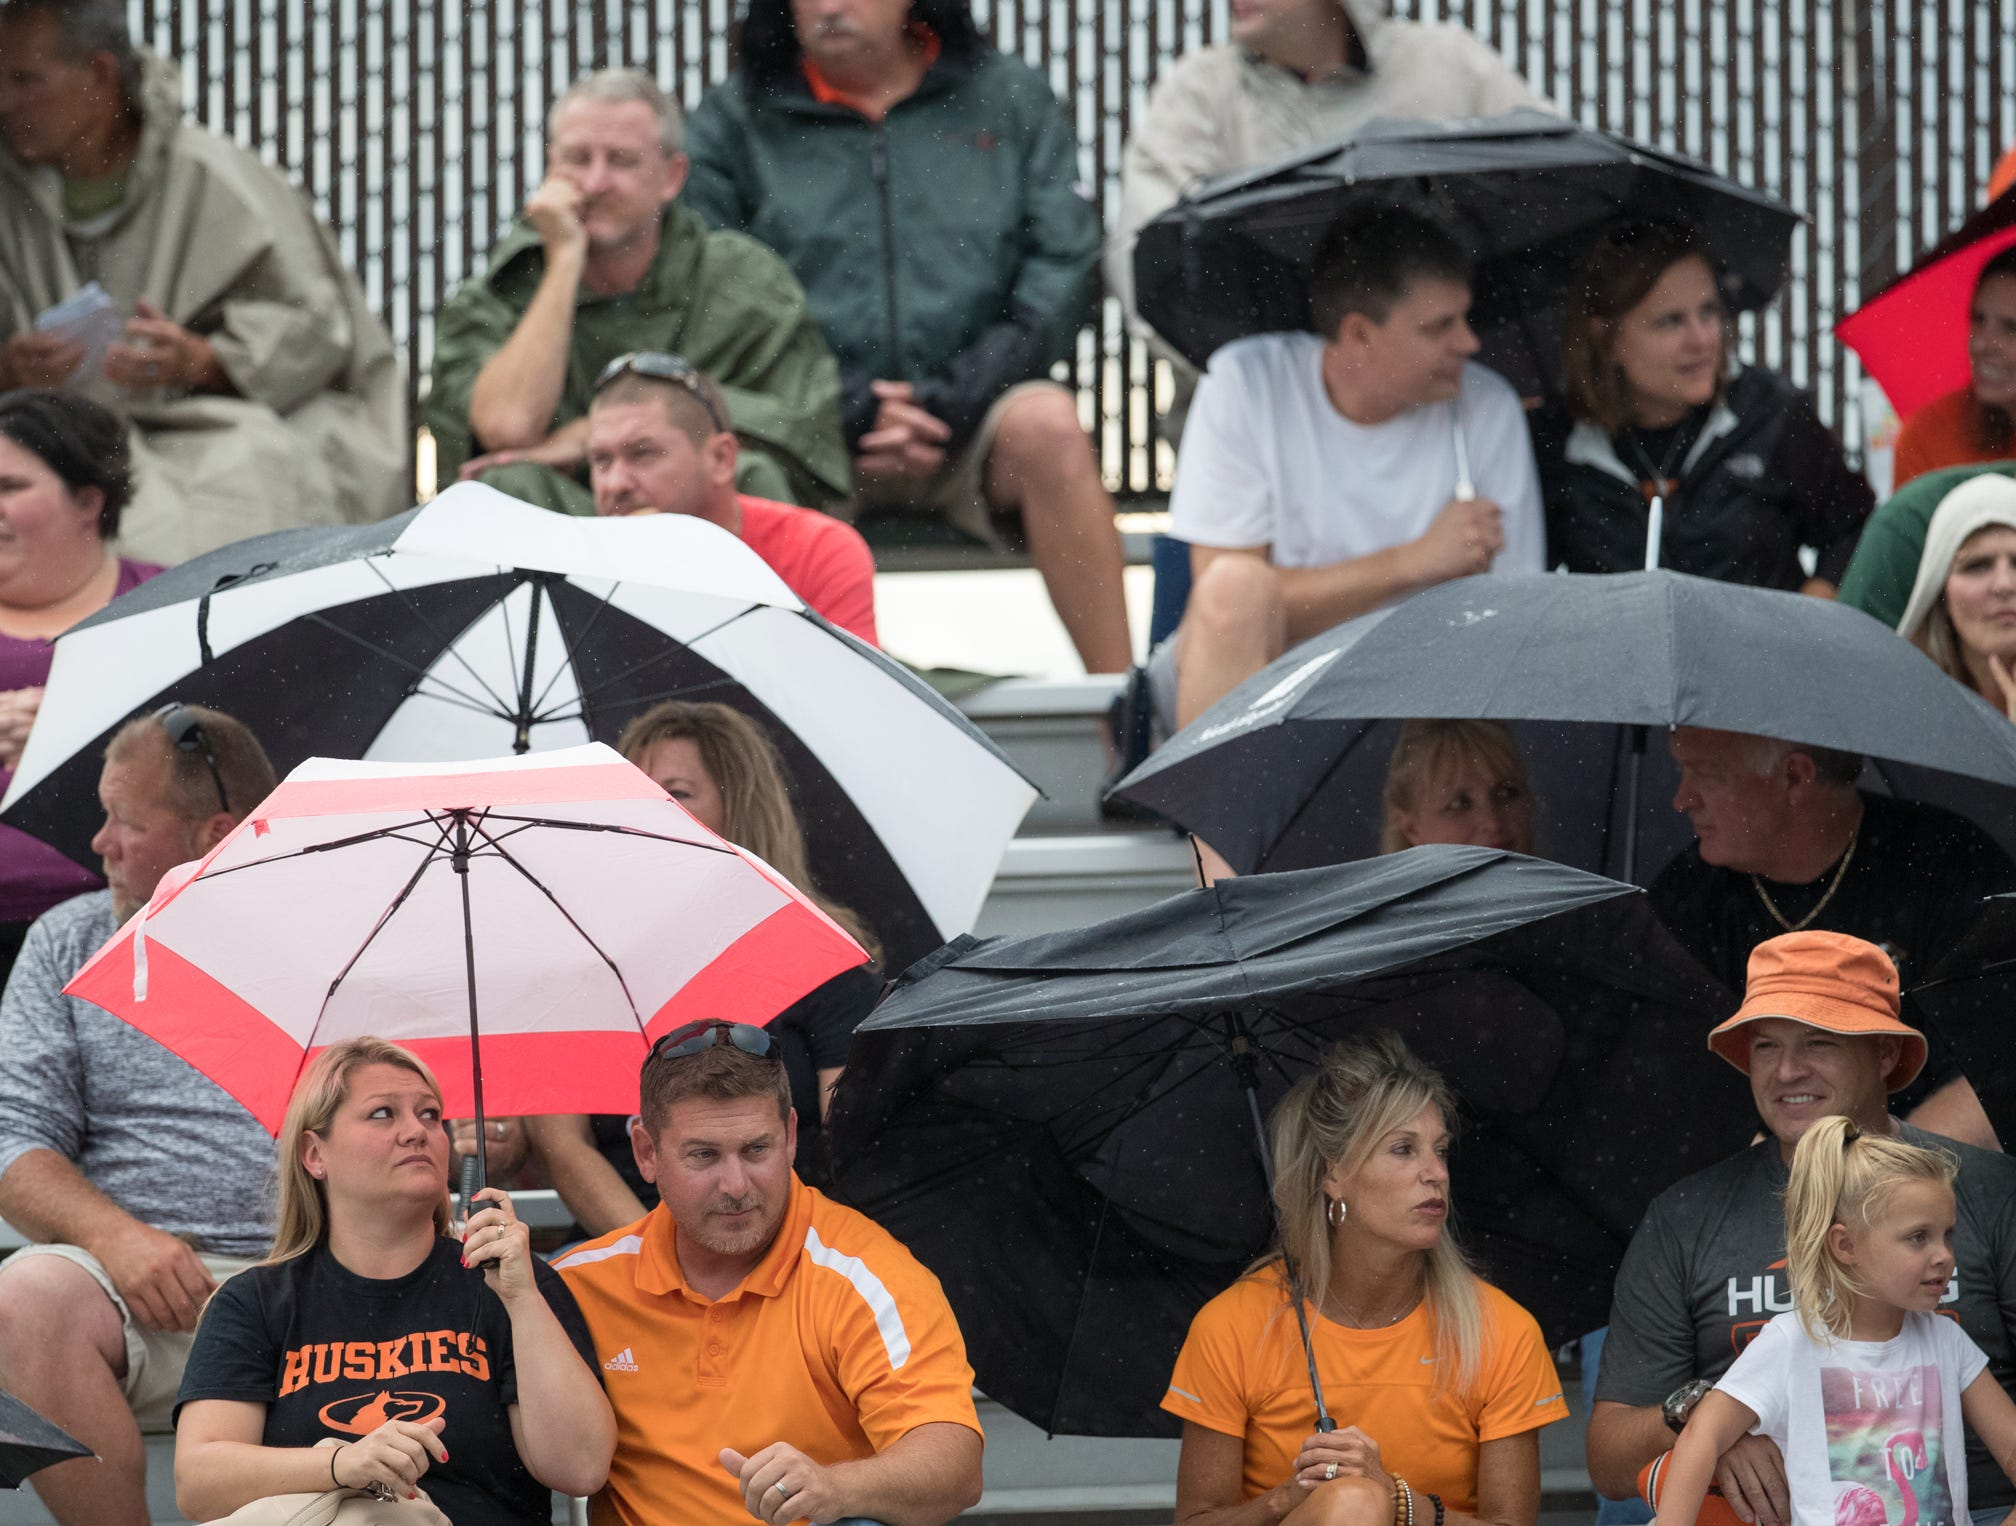 Fans duck under umbrellas during a brief first quarter shower, Mount Vernon High School at Hamilton Heights High School football, won by MVHS, 43-14, Arcadia, Friday, Aug. 17, 2018. This game is the first for HHHS head coach Jon Kirschner, who faced his father Mike Kirschner, a veteran and champion coach in his first season at MVHS.